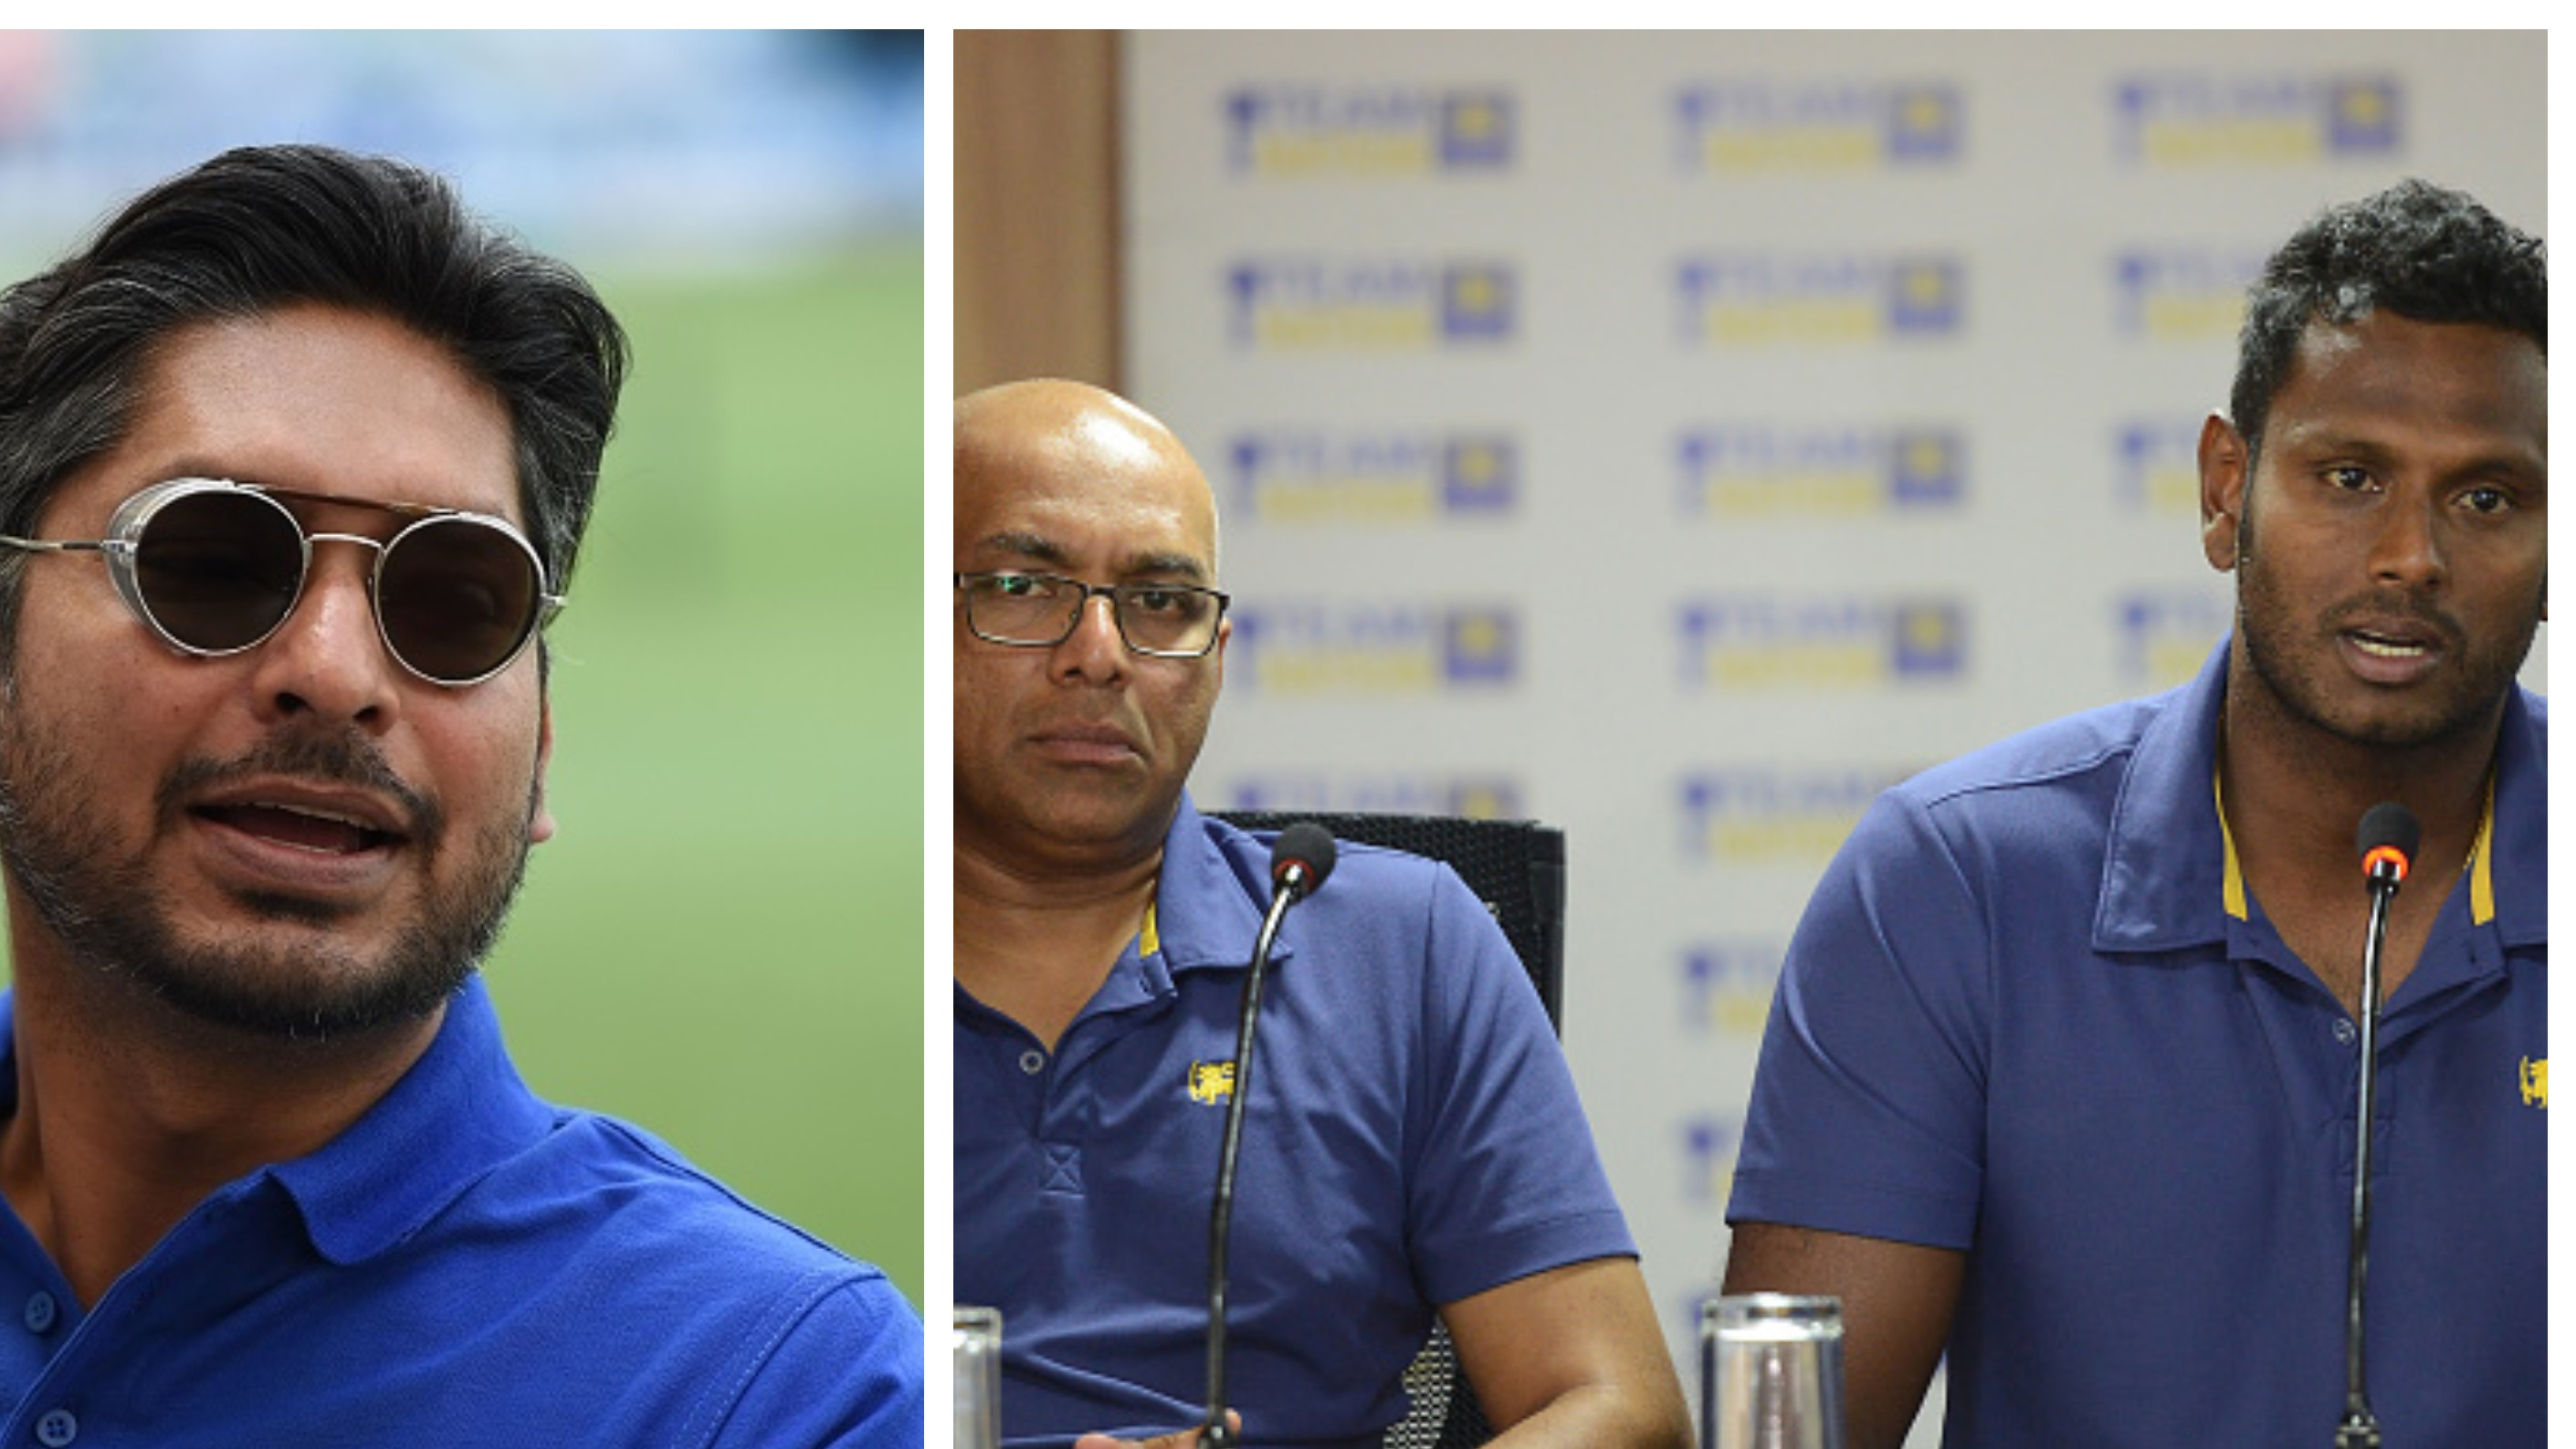 Kumar Sangakkara wants Hathurusinghe and Mathews to resolve their issues and move forward